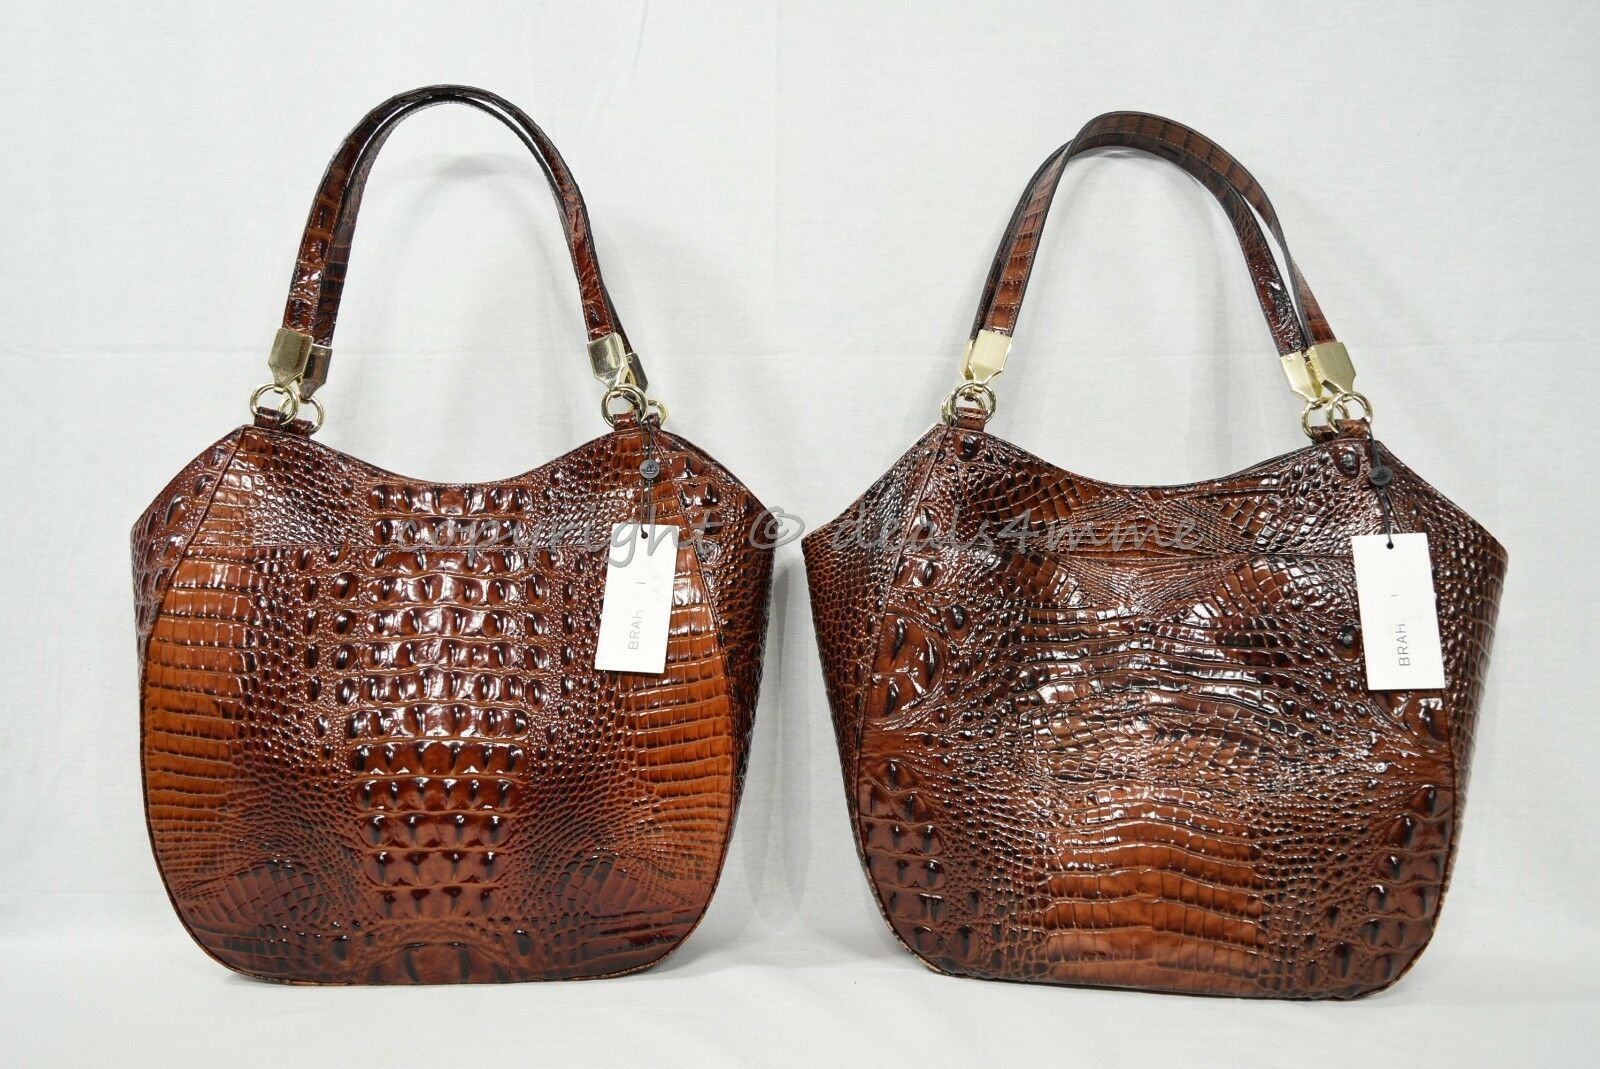 NWT Brahmin Marianna Leather Tote / Shoulder Bag in Pecan Melbourne image 12